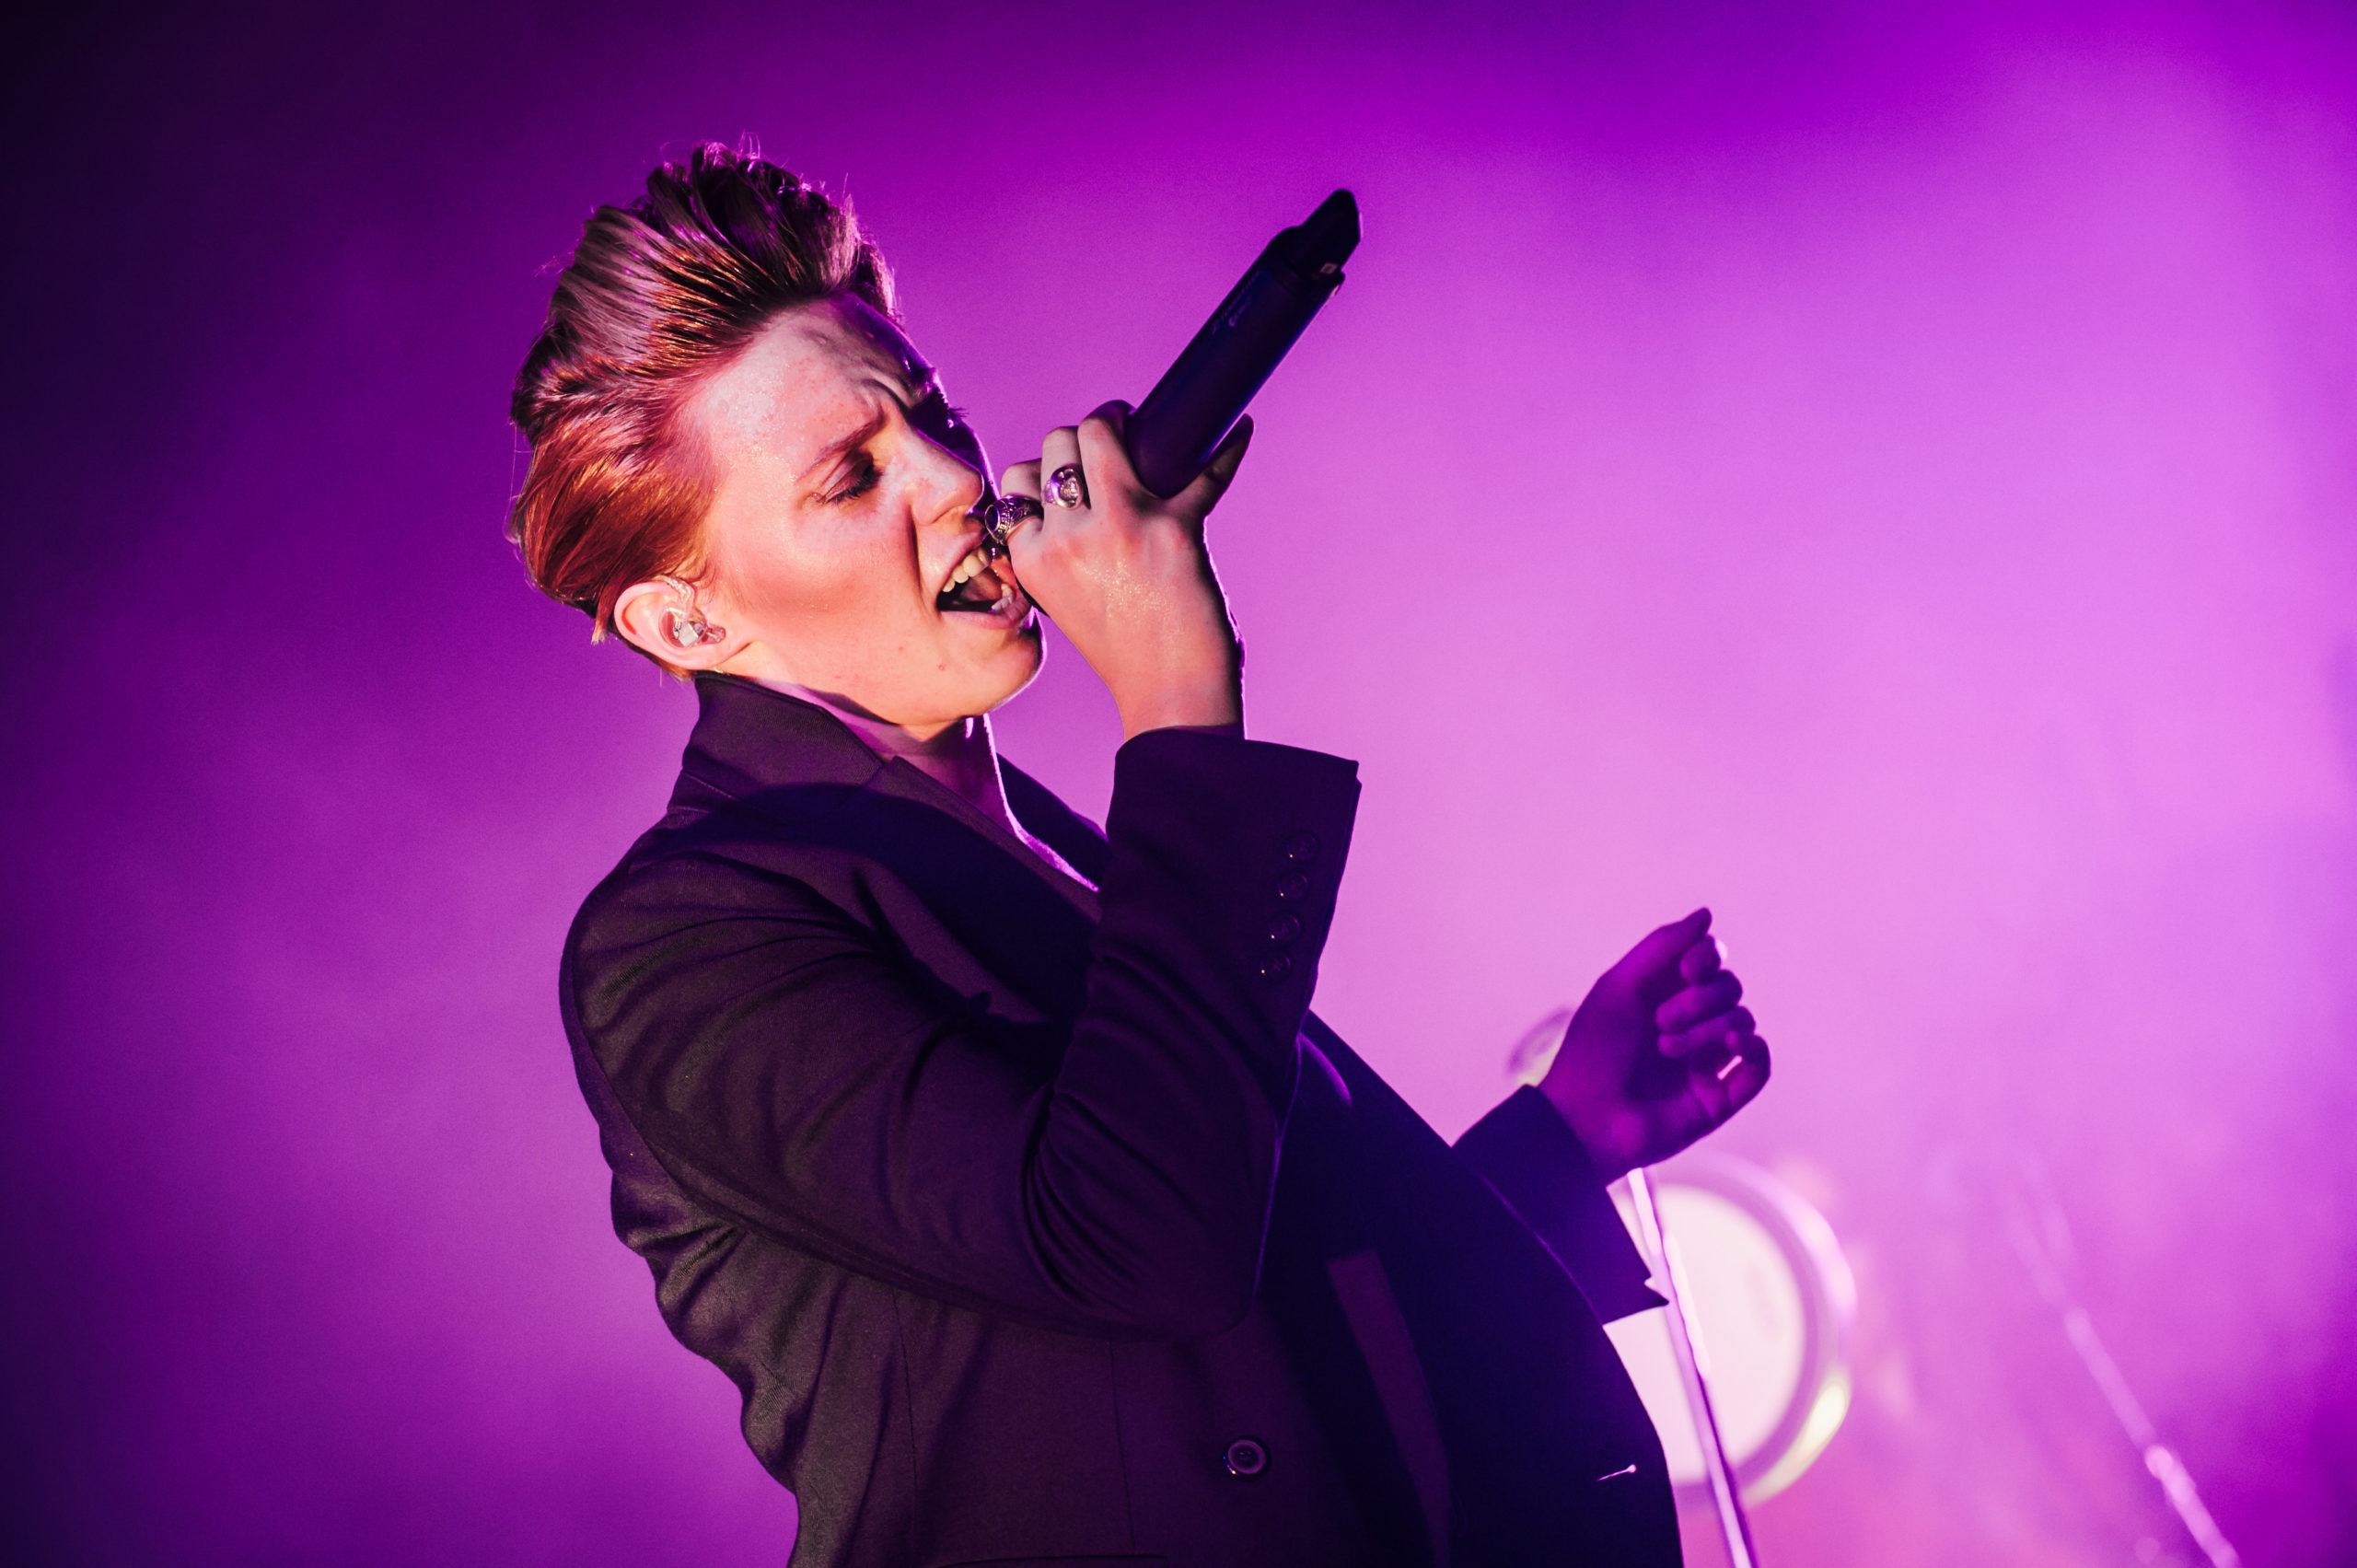 Singer Elly Jackson of La Roux performs live on stage during Melt! Festival in 2015